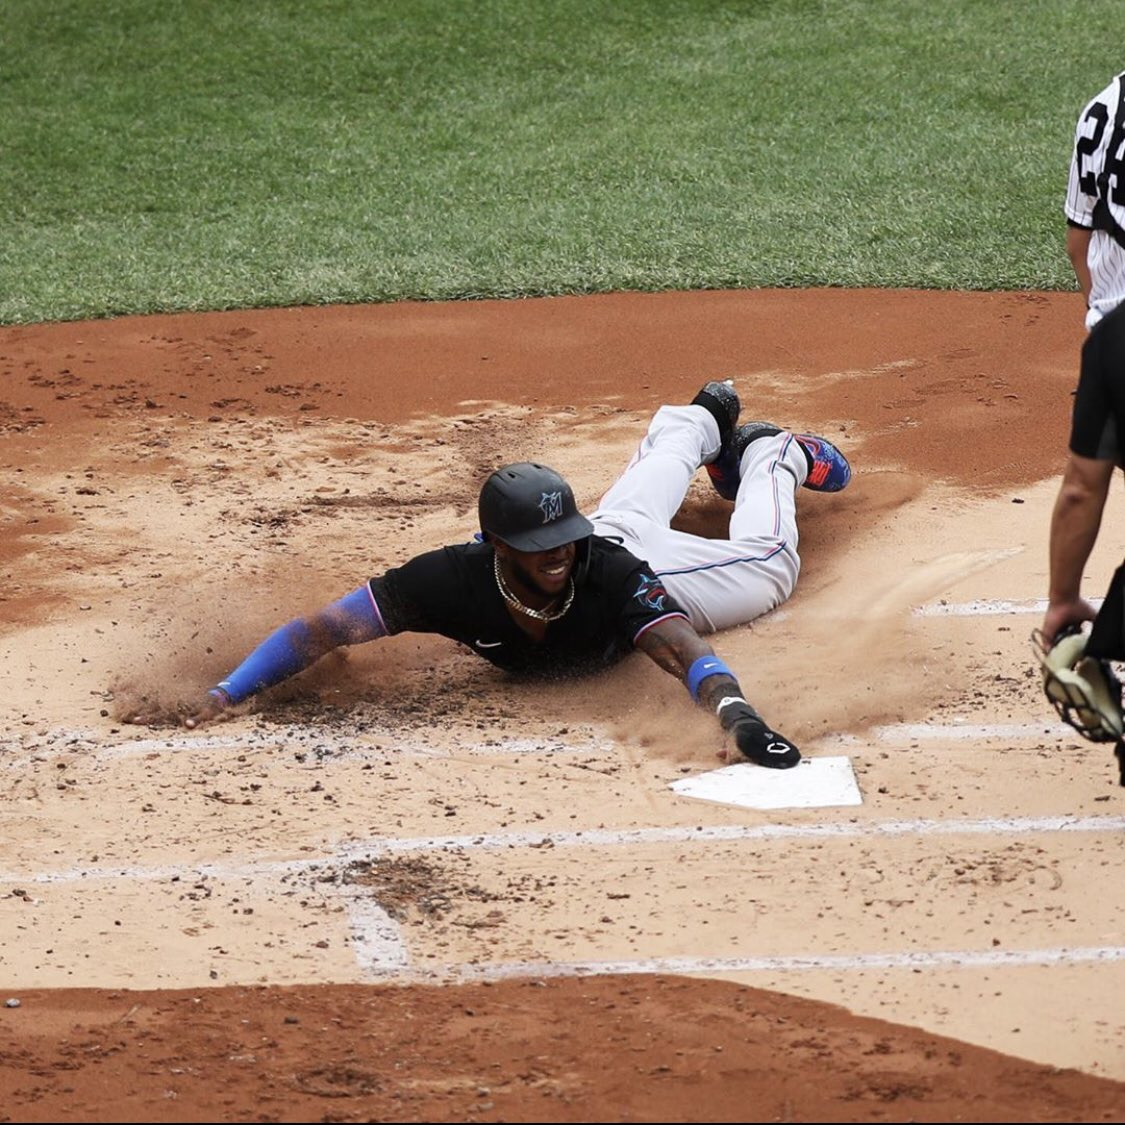 Monte and the Marlins sliding safely into the Postseason. #EvoGeneral